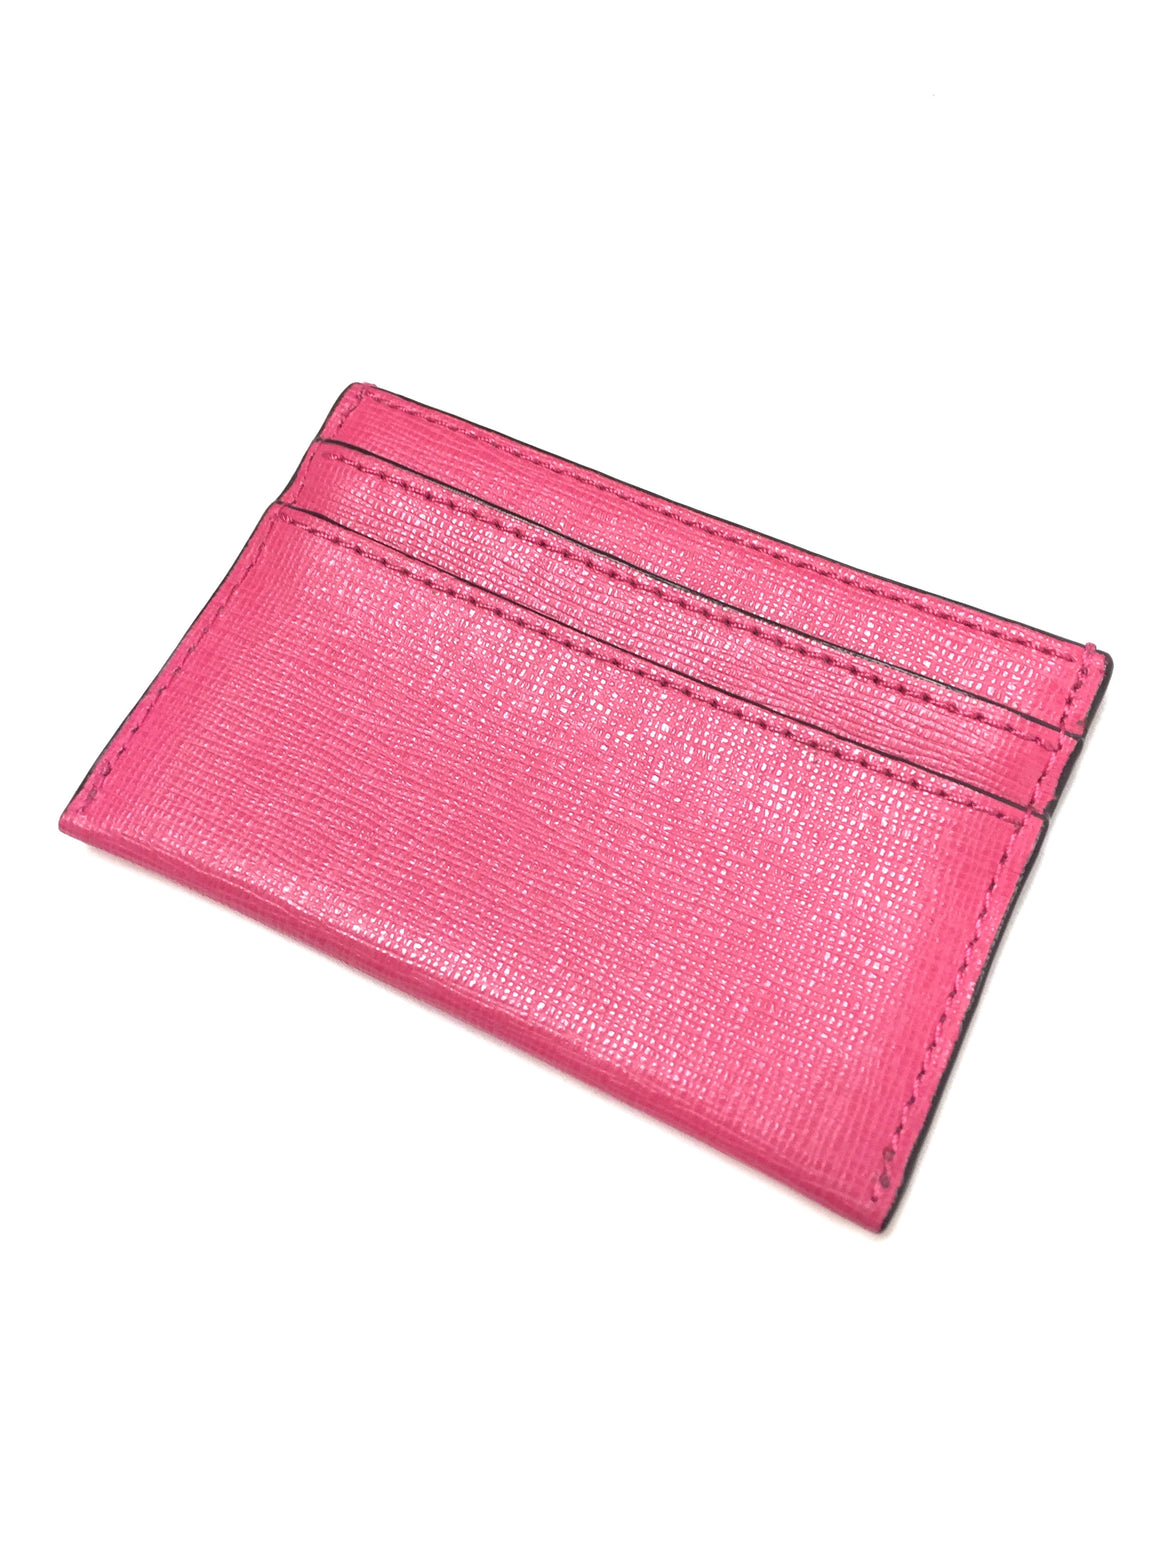 COACH New Pink Saffiano Leather Credit Card/Business Card Case